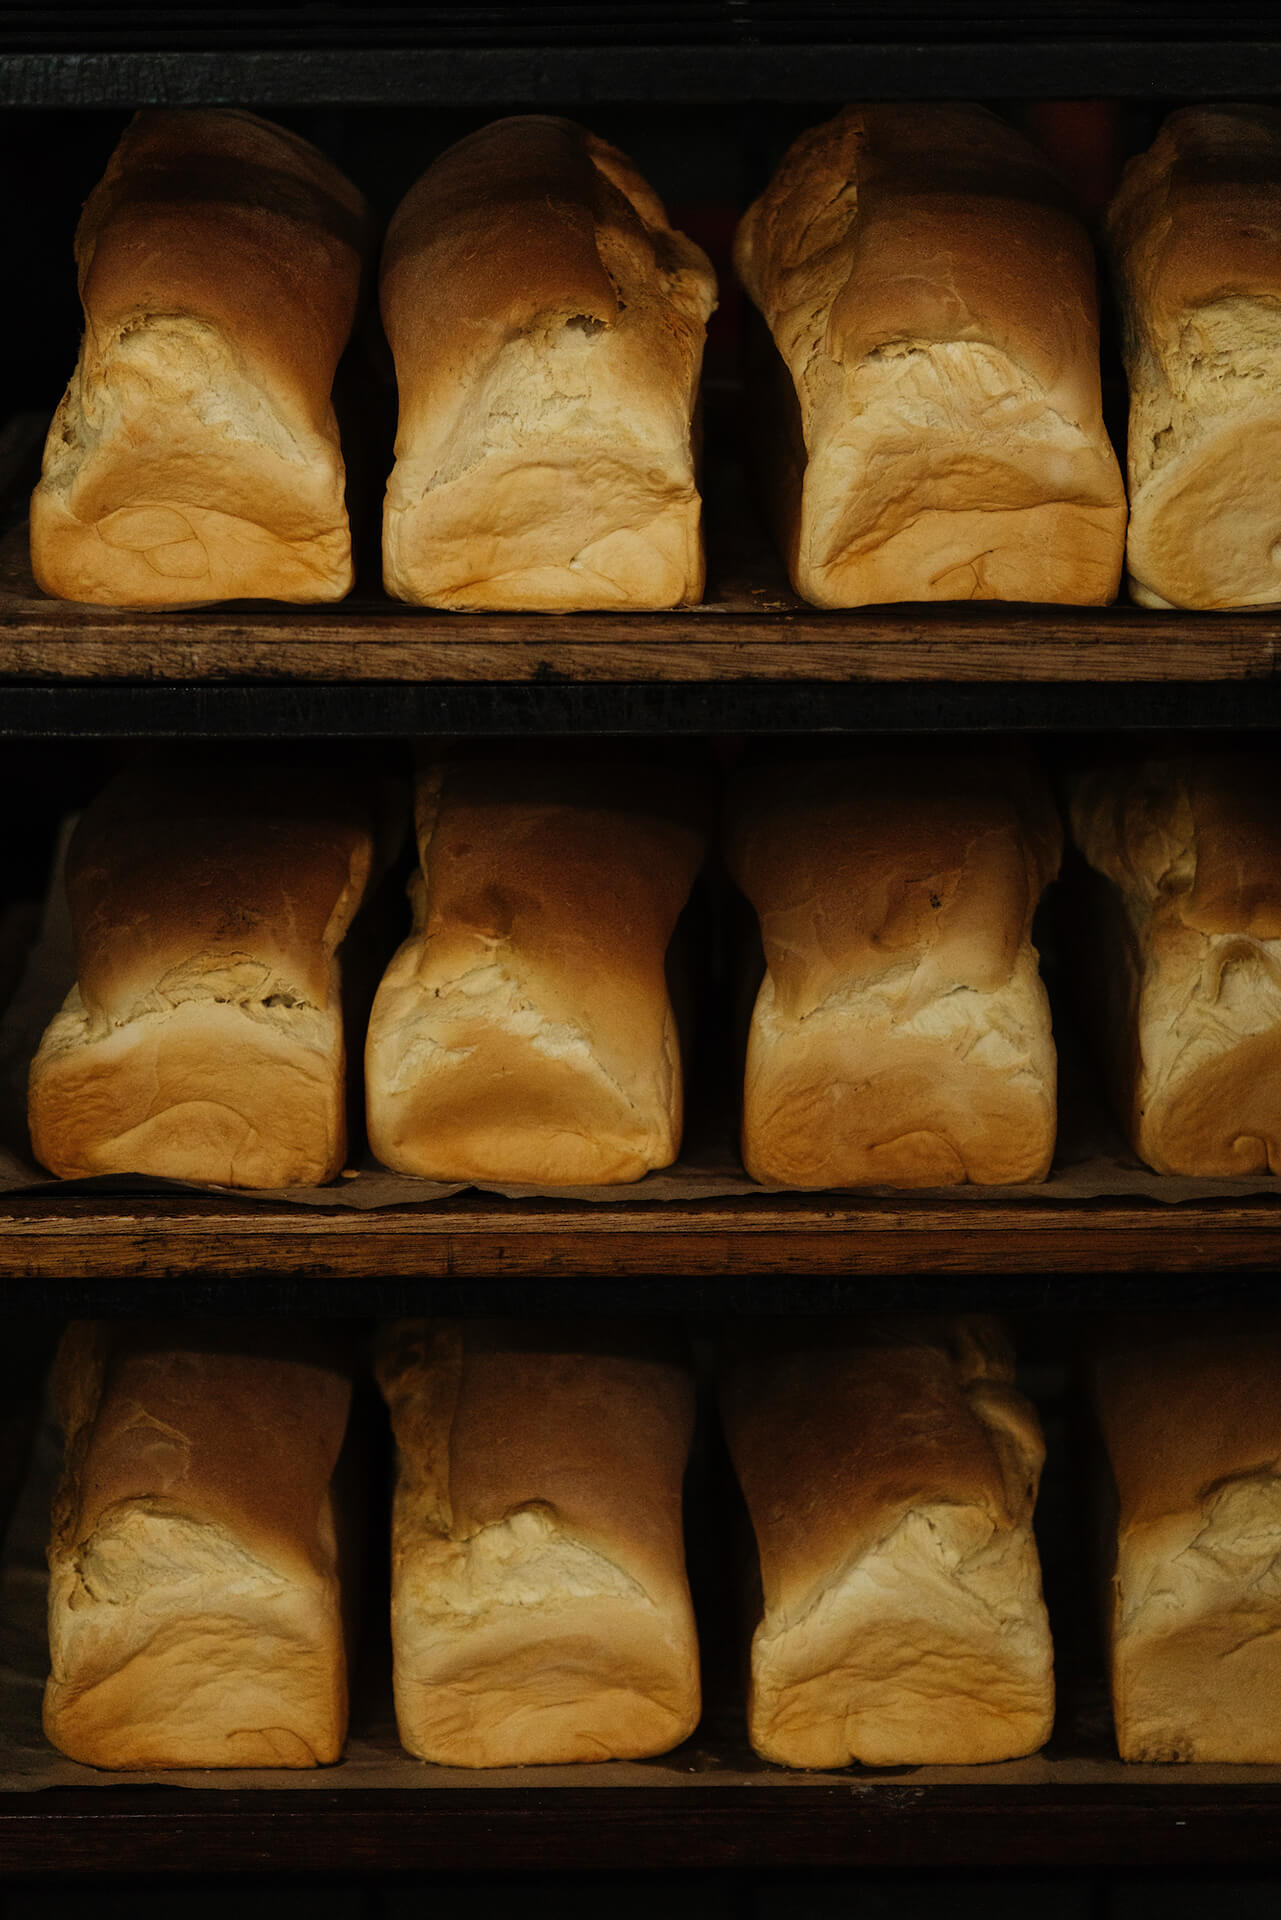 Three shelves of freshly baked loaves of bread